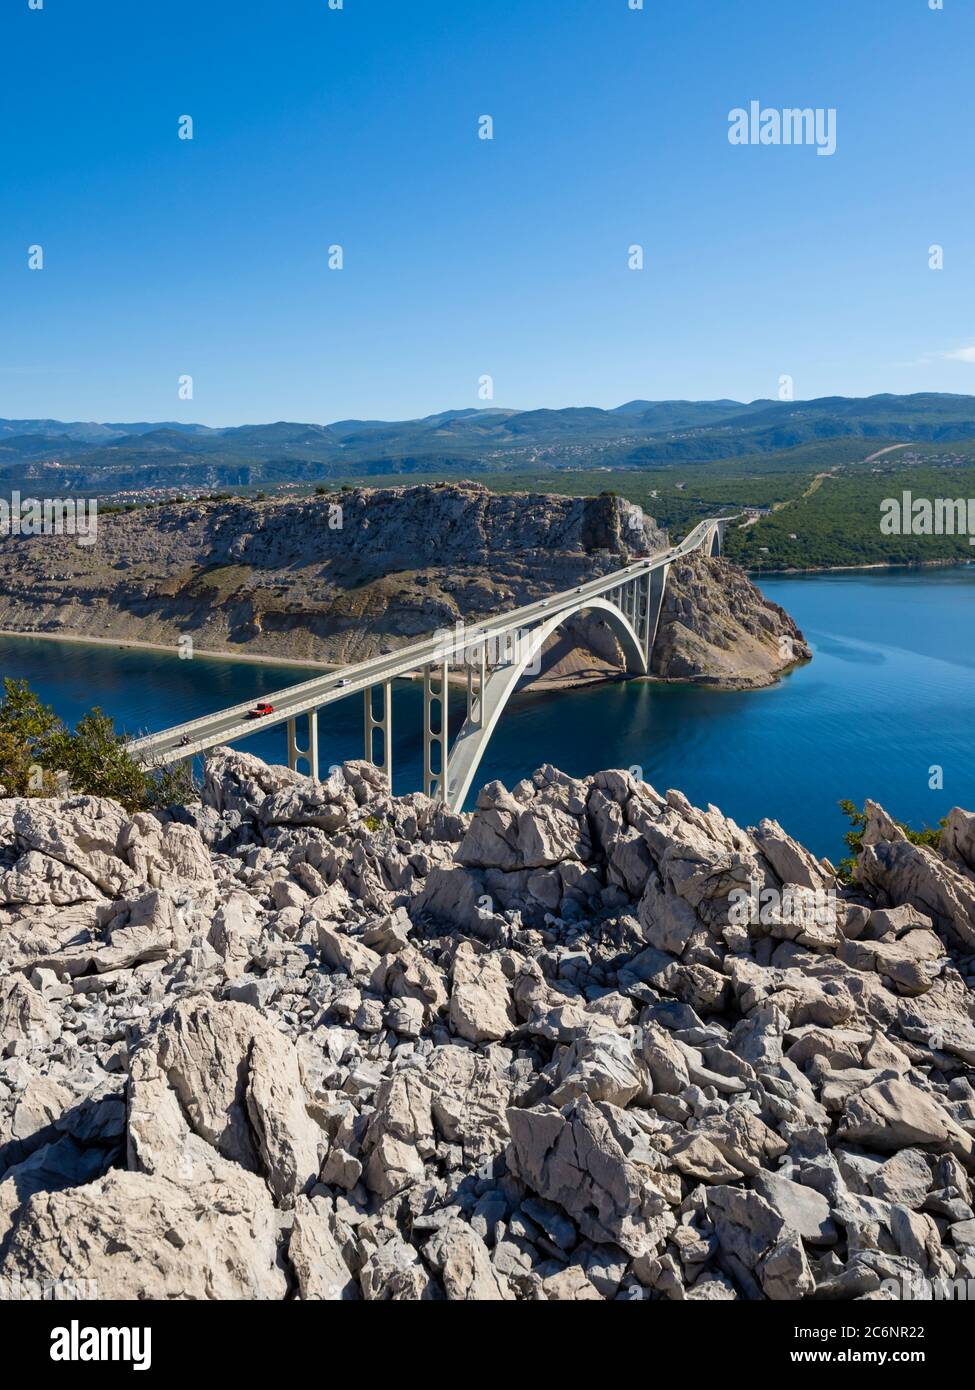 Bridge mainland to Krk island in Croatia Europe Stock Photo